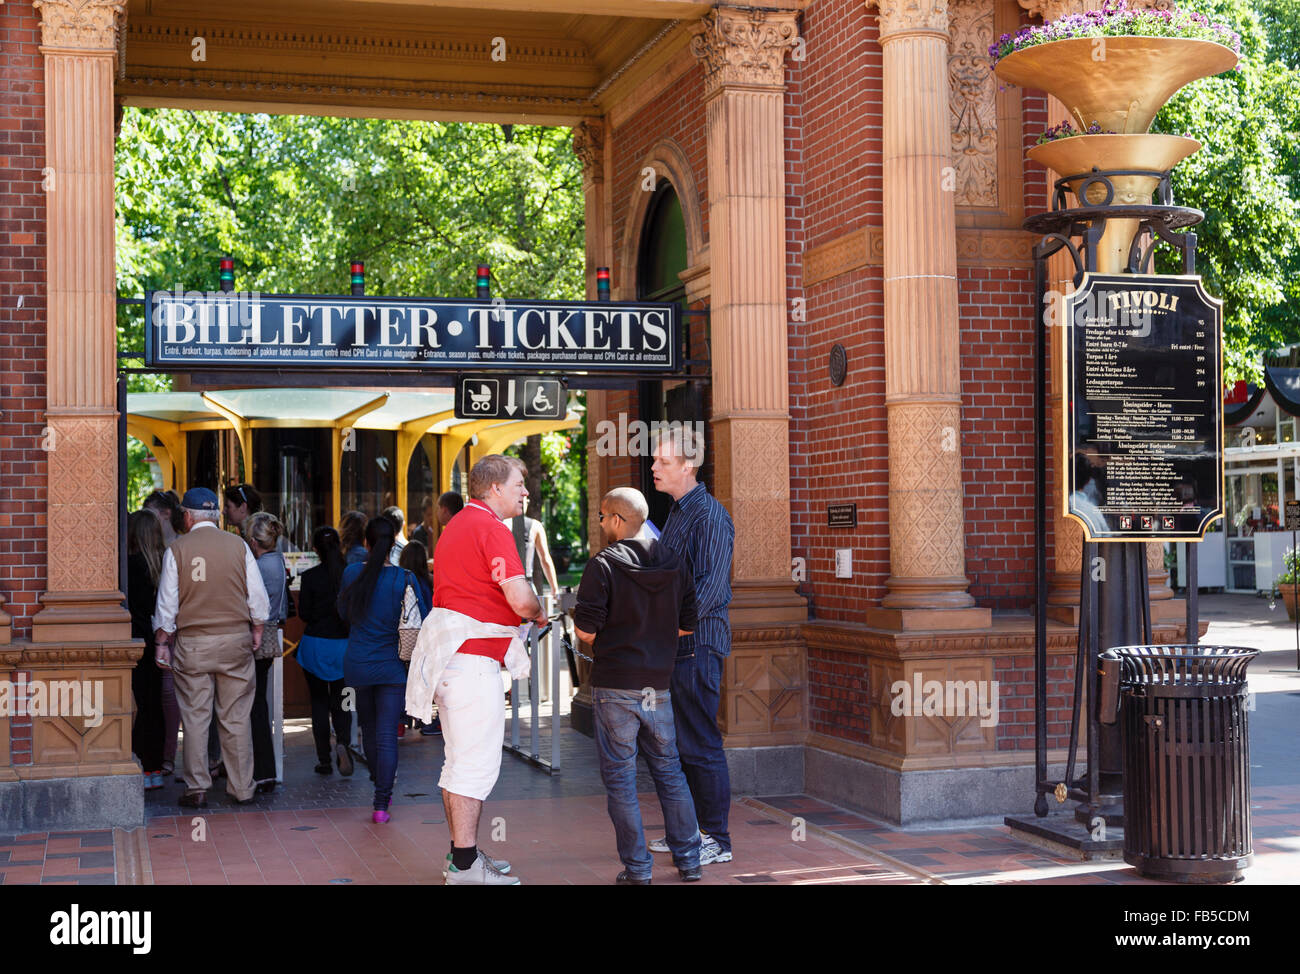 People buying tickets from Ticket Office at entrance gate to Tivoli Stock Photo: 92932608 - Alamy